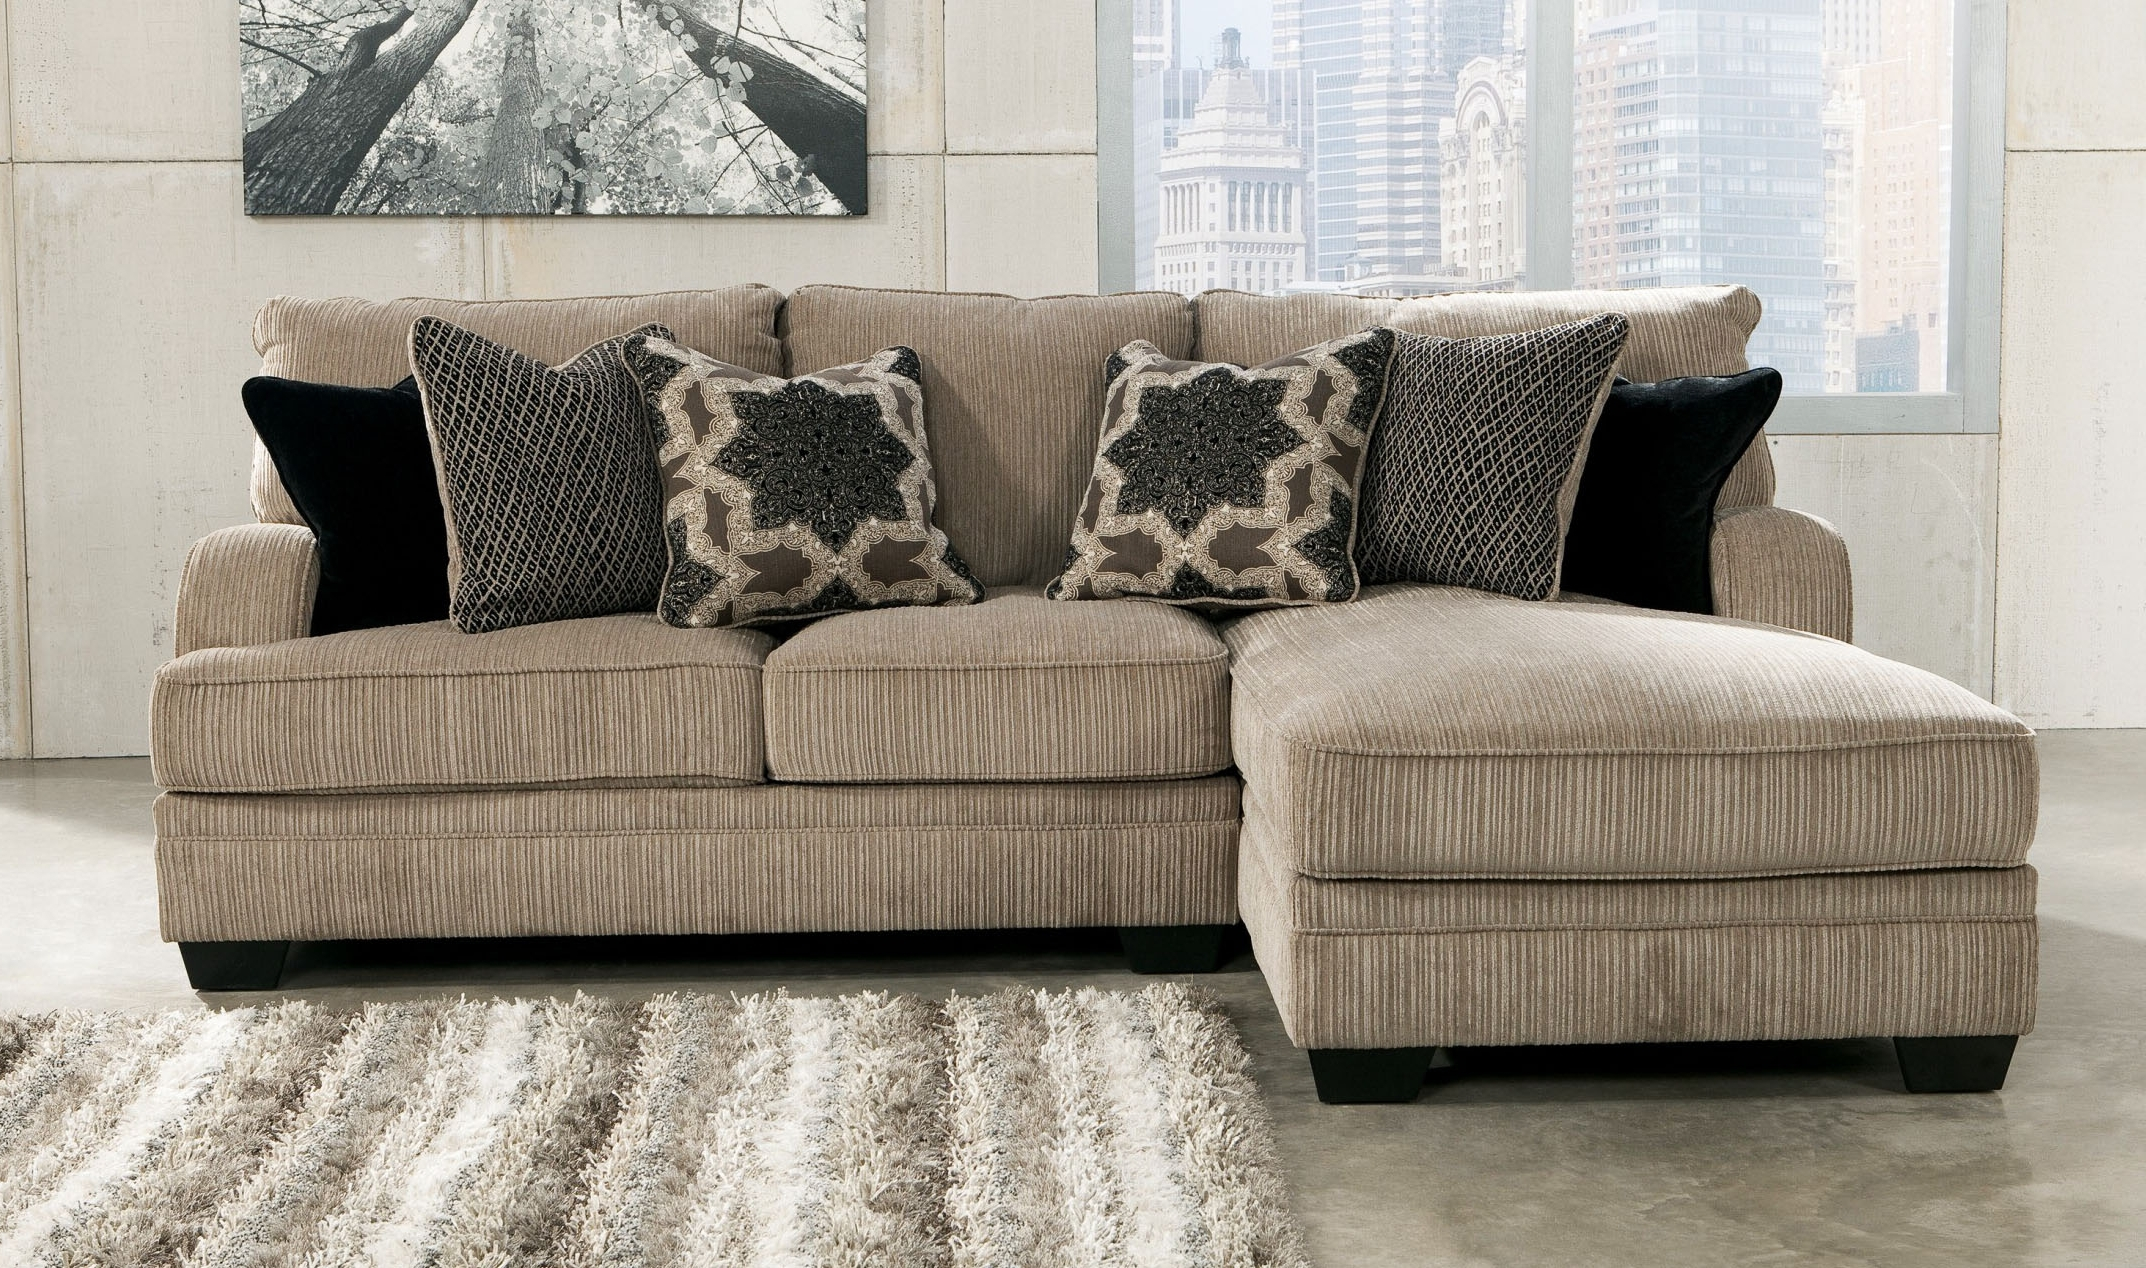 Well Known Sectional Sofas For Small Areas Intended For Modern Sectional Sofas For Small Spaces (Gallery 18 of 20)